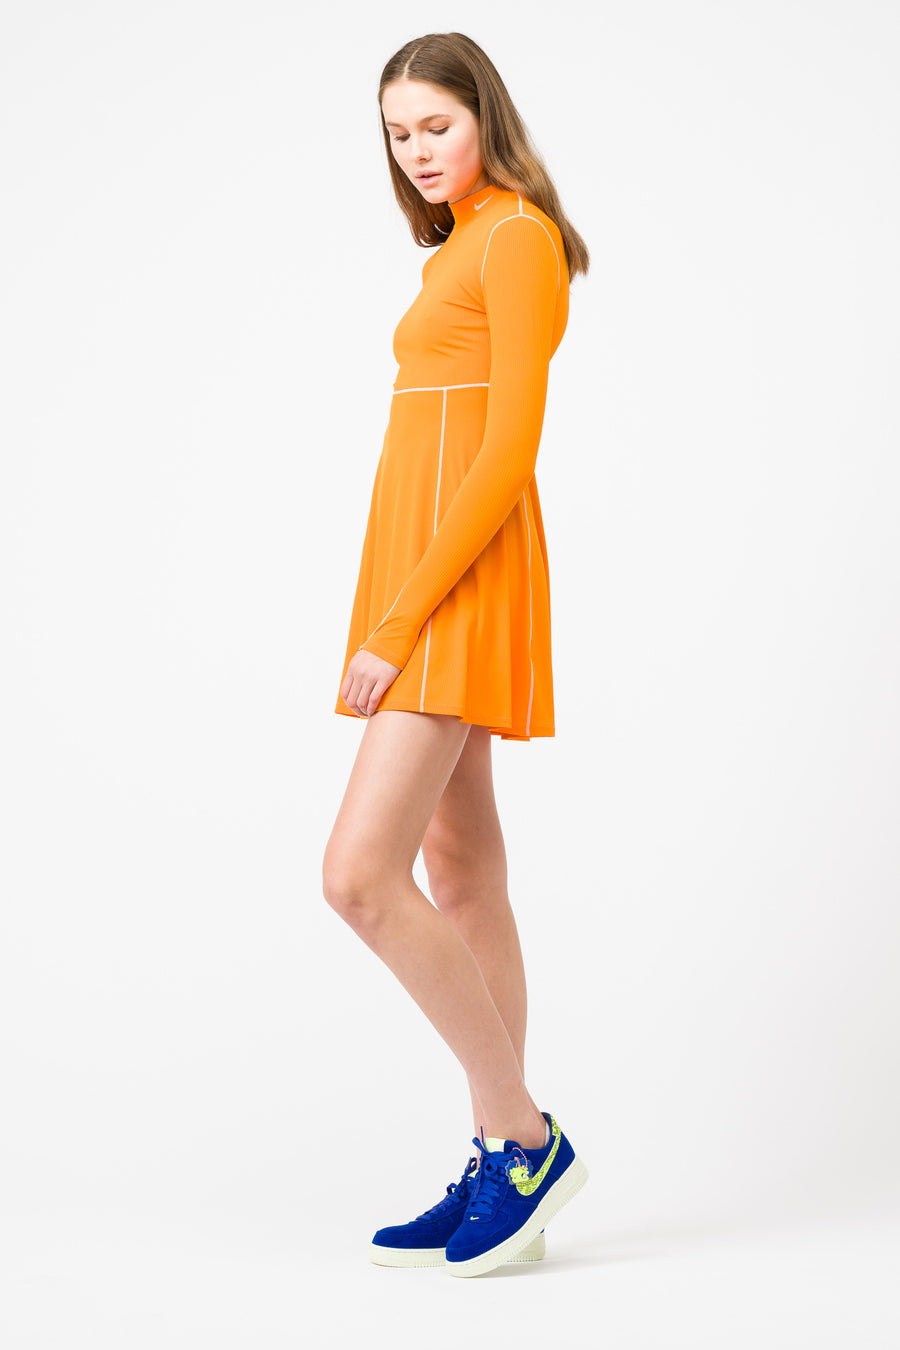 Nike Olivia Kim Long Sleeve Tennis Dress in Bright Ceramic - Notre